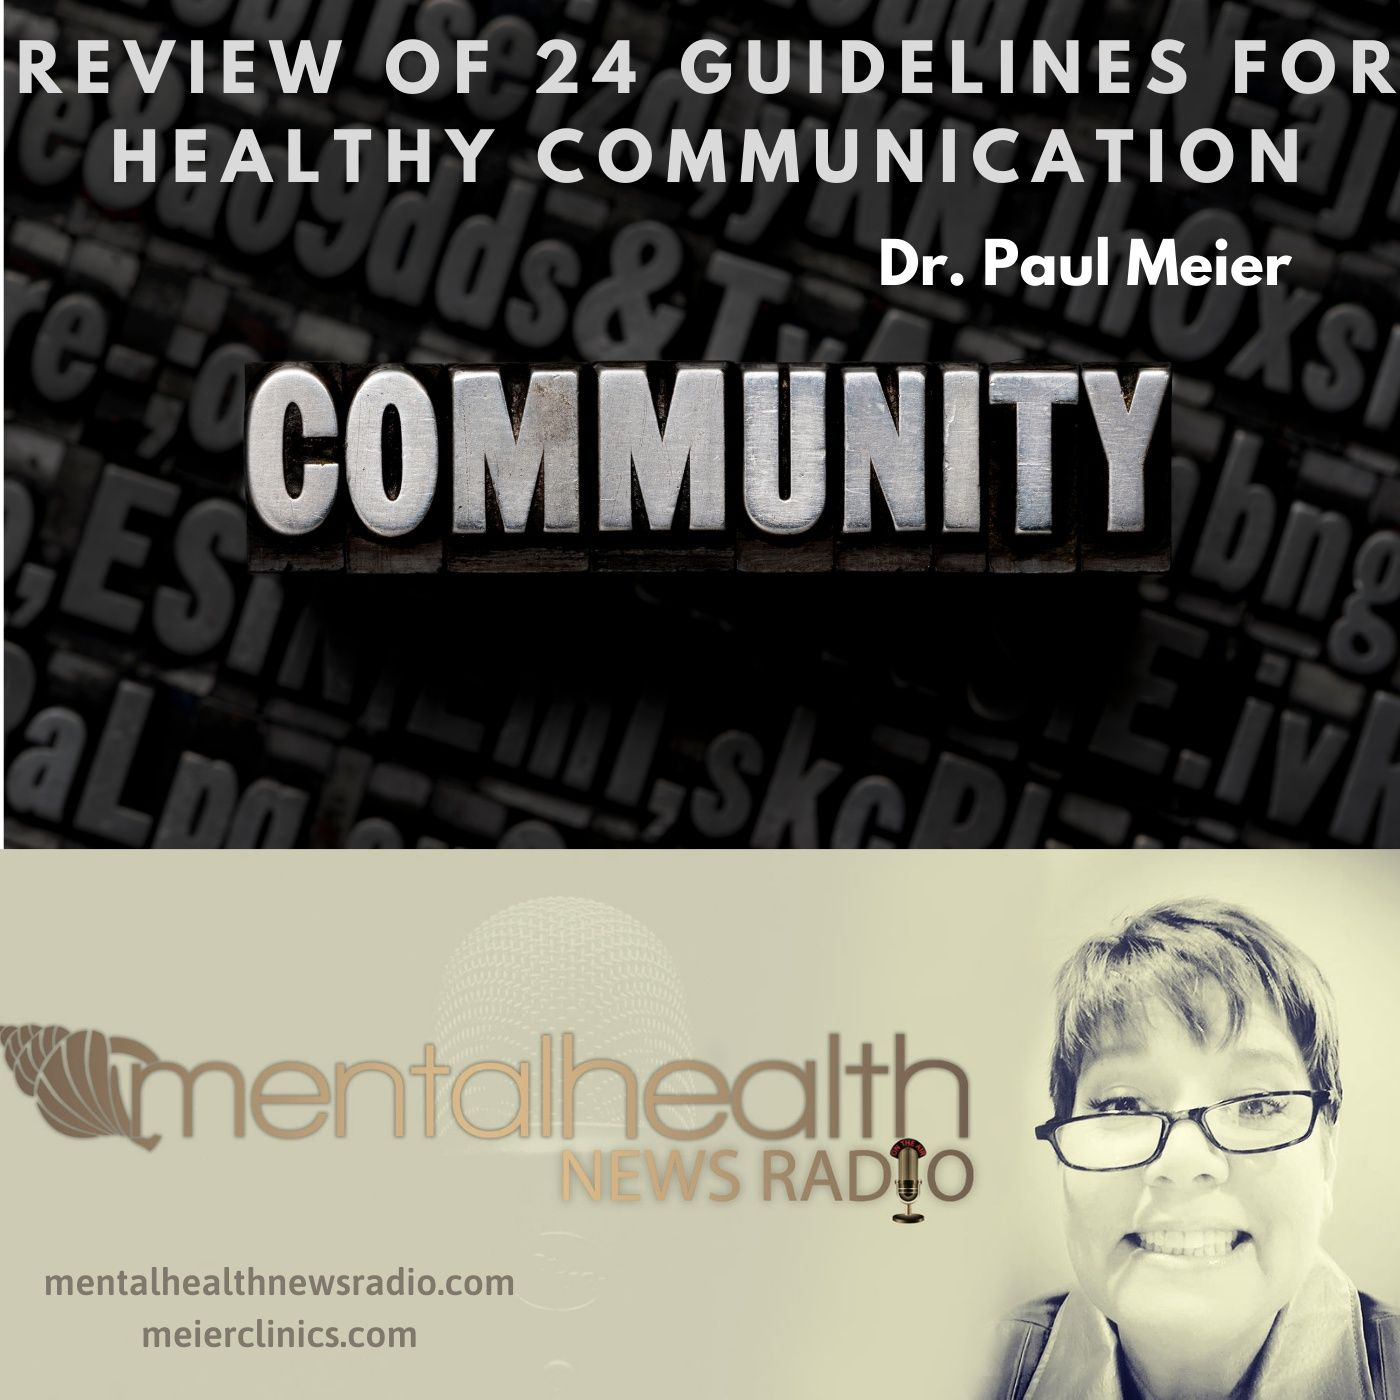 Mental Health News Radio - Review of 24 Guidelines for Healthy Communication with Dr. Paul Meier